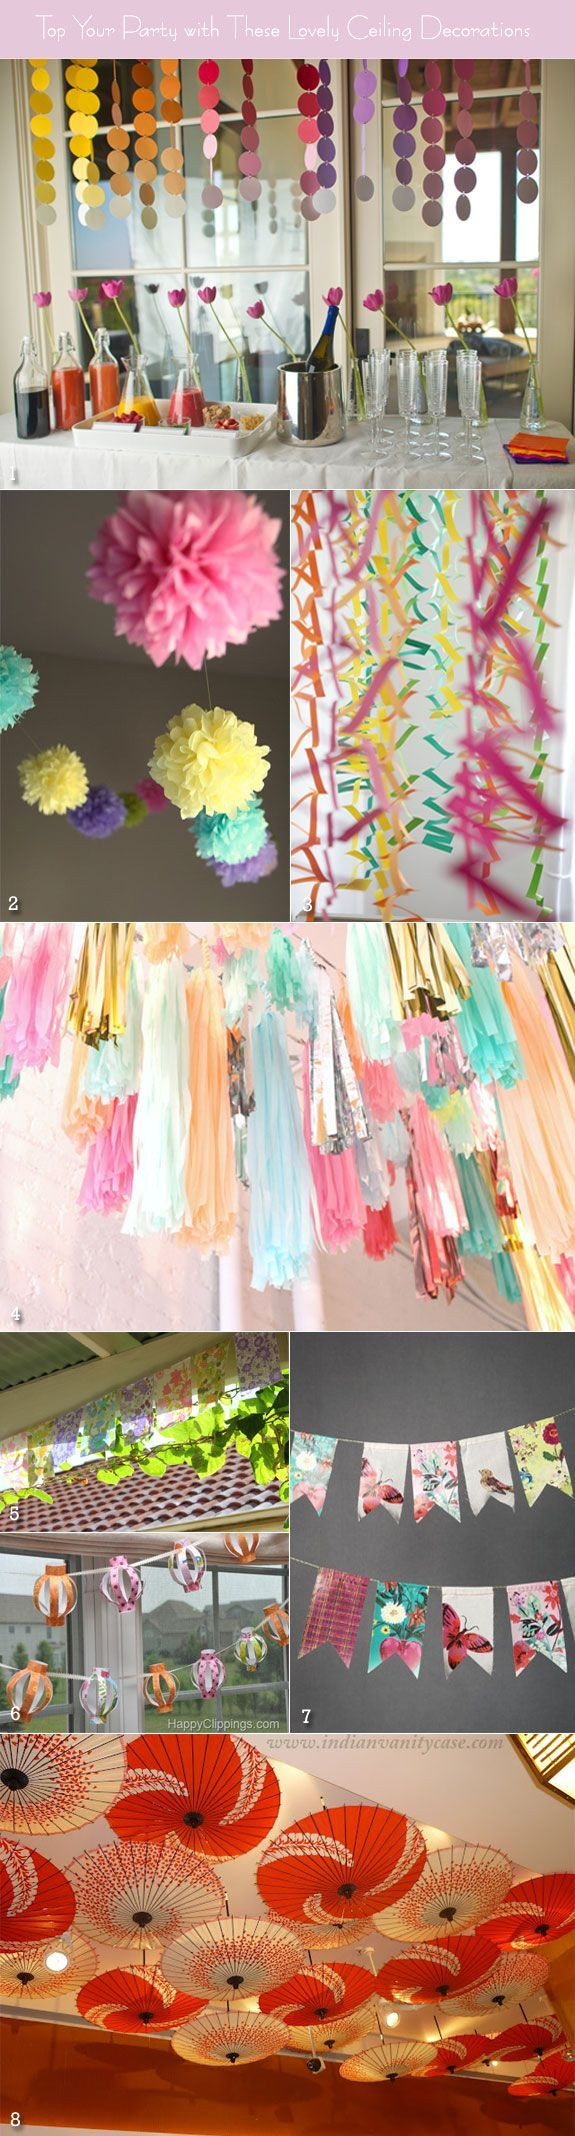 1000 ideas about party ceiling decorations on pinterest